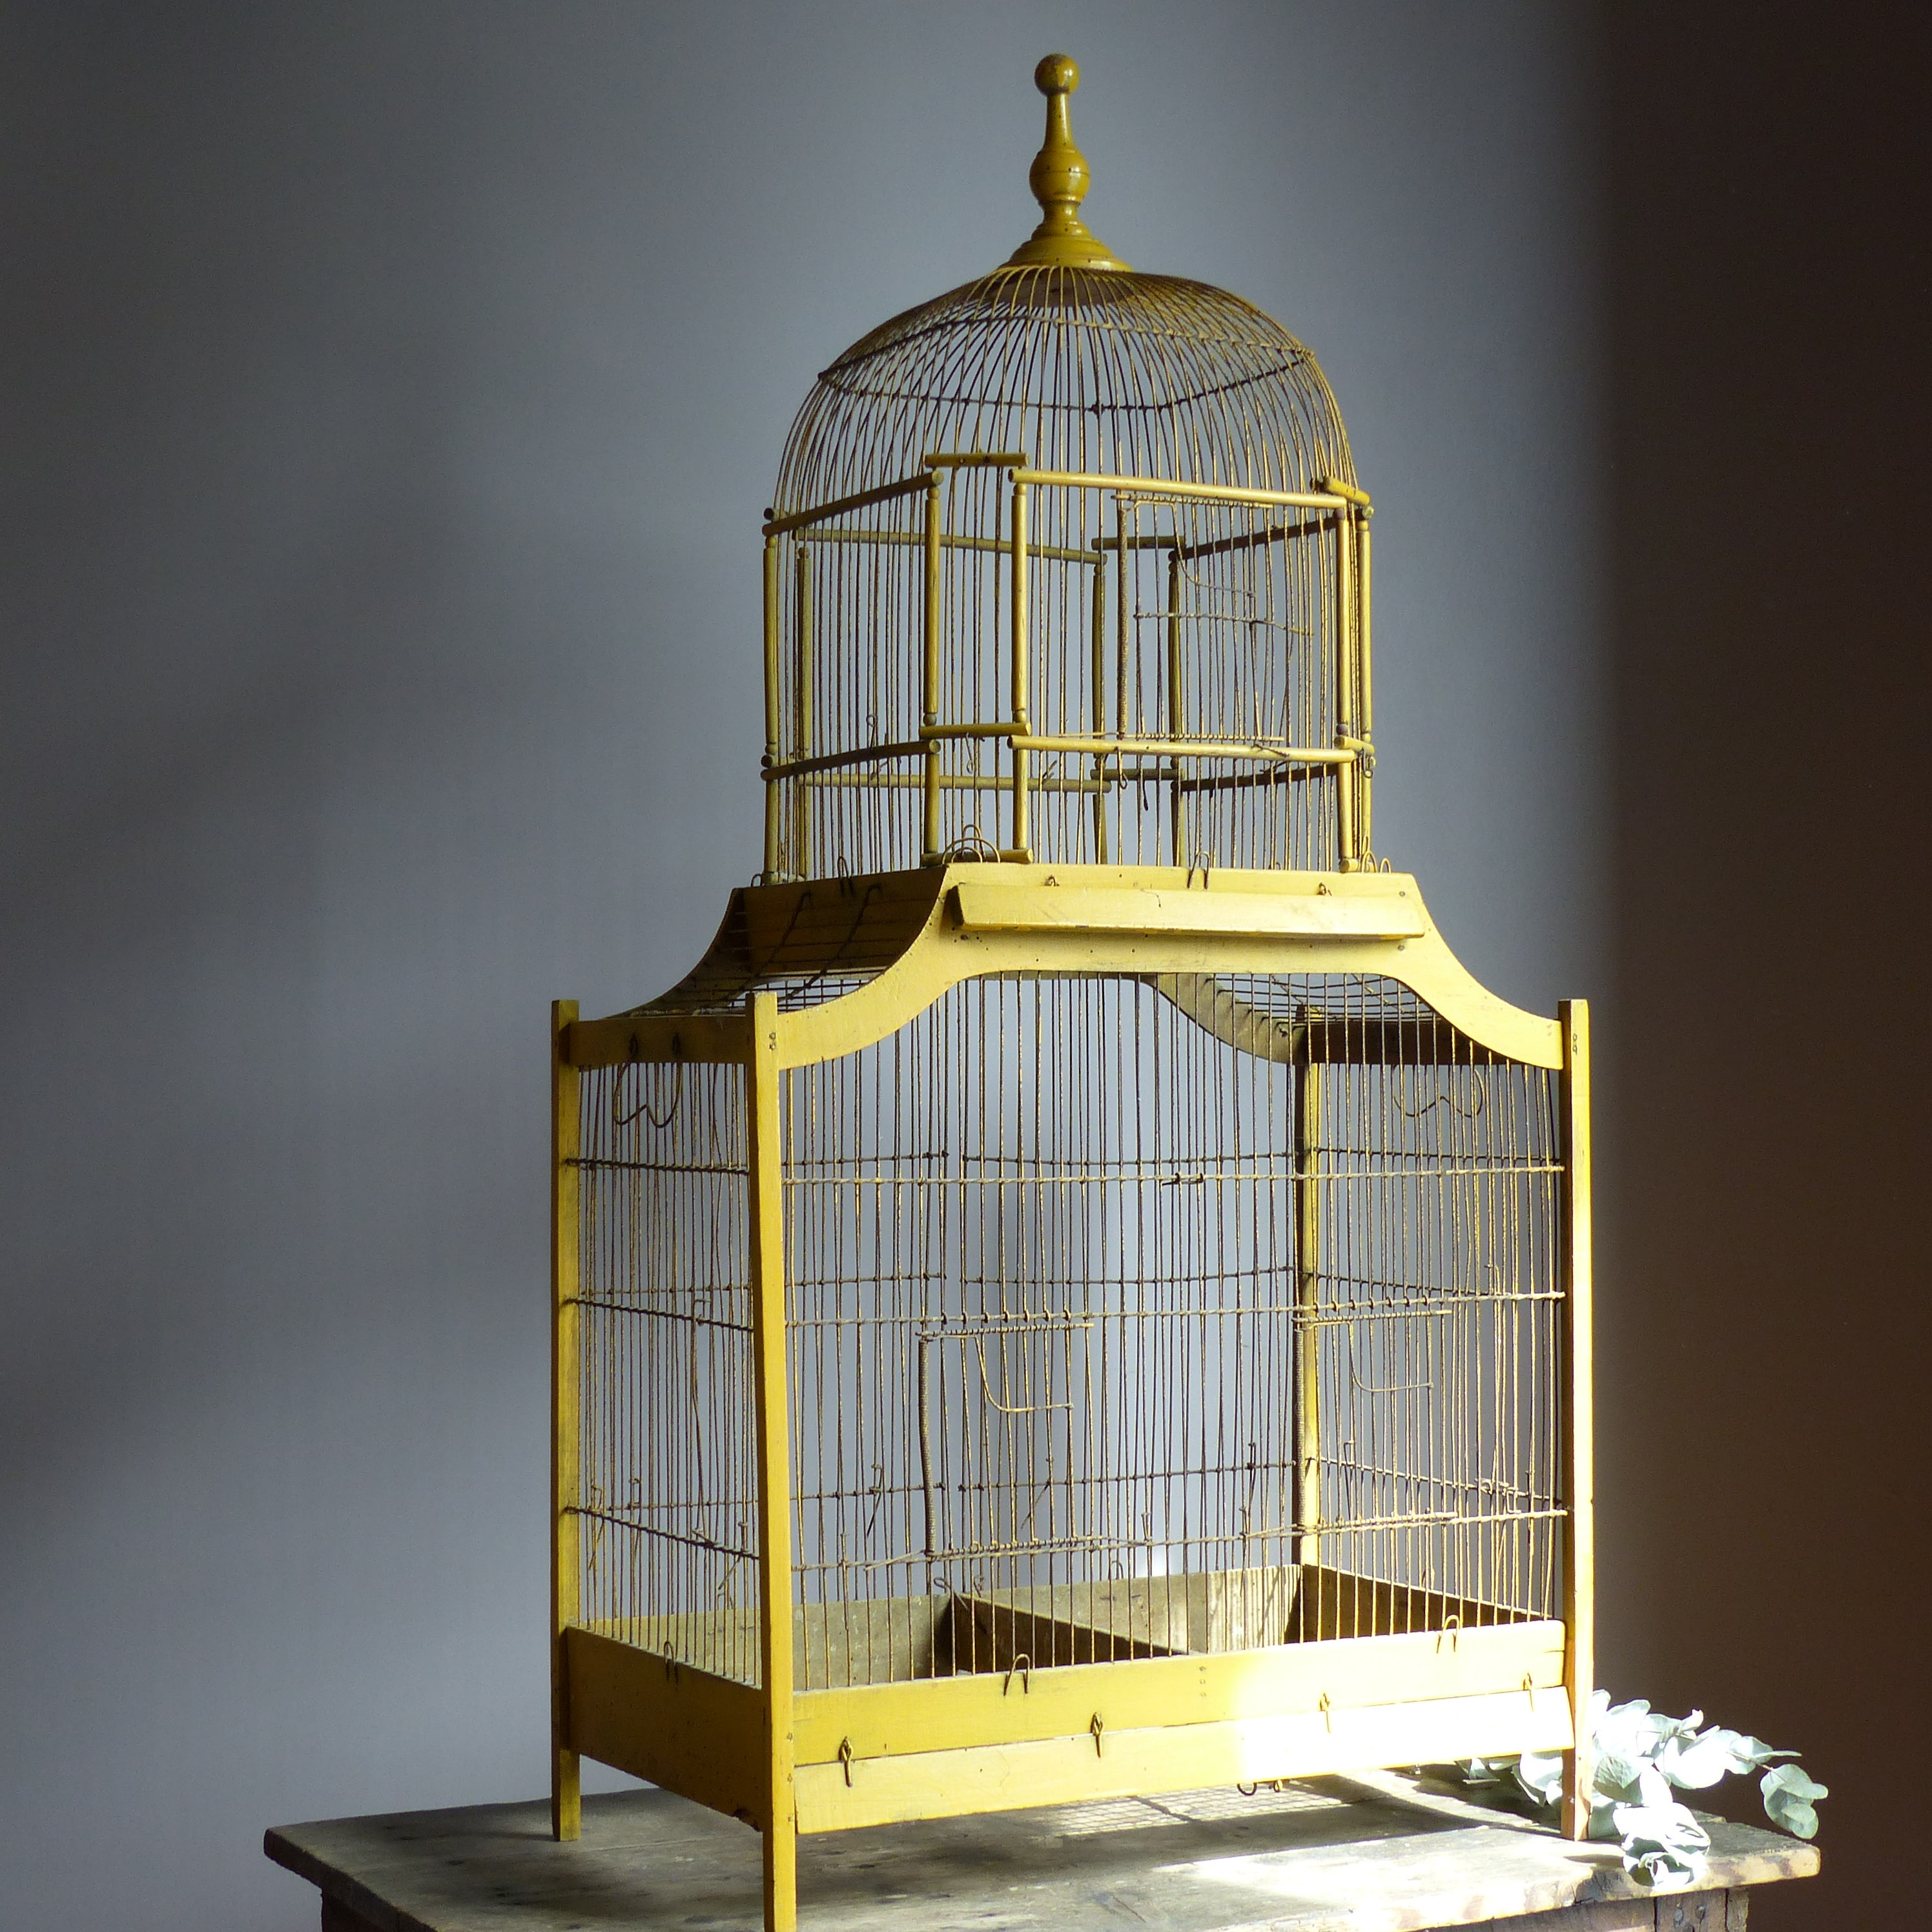 cage oiseaux en bois napol on iii lignedebrocante brocante en ligne chine pour vous. Black Bedroom Furniture Sets. Home Design Ideas